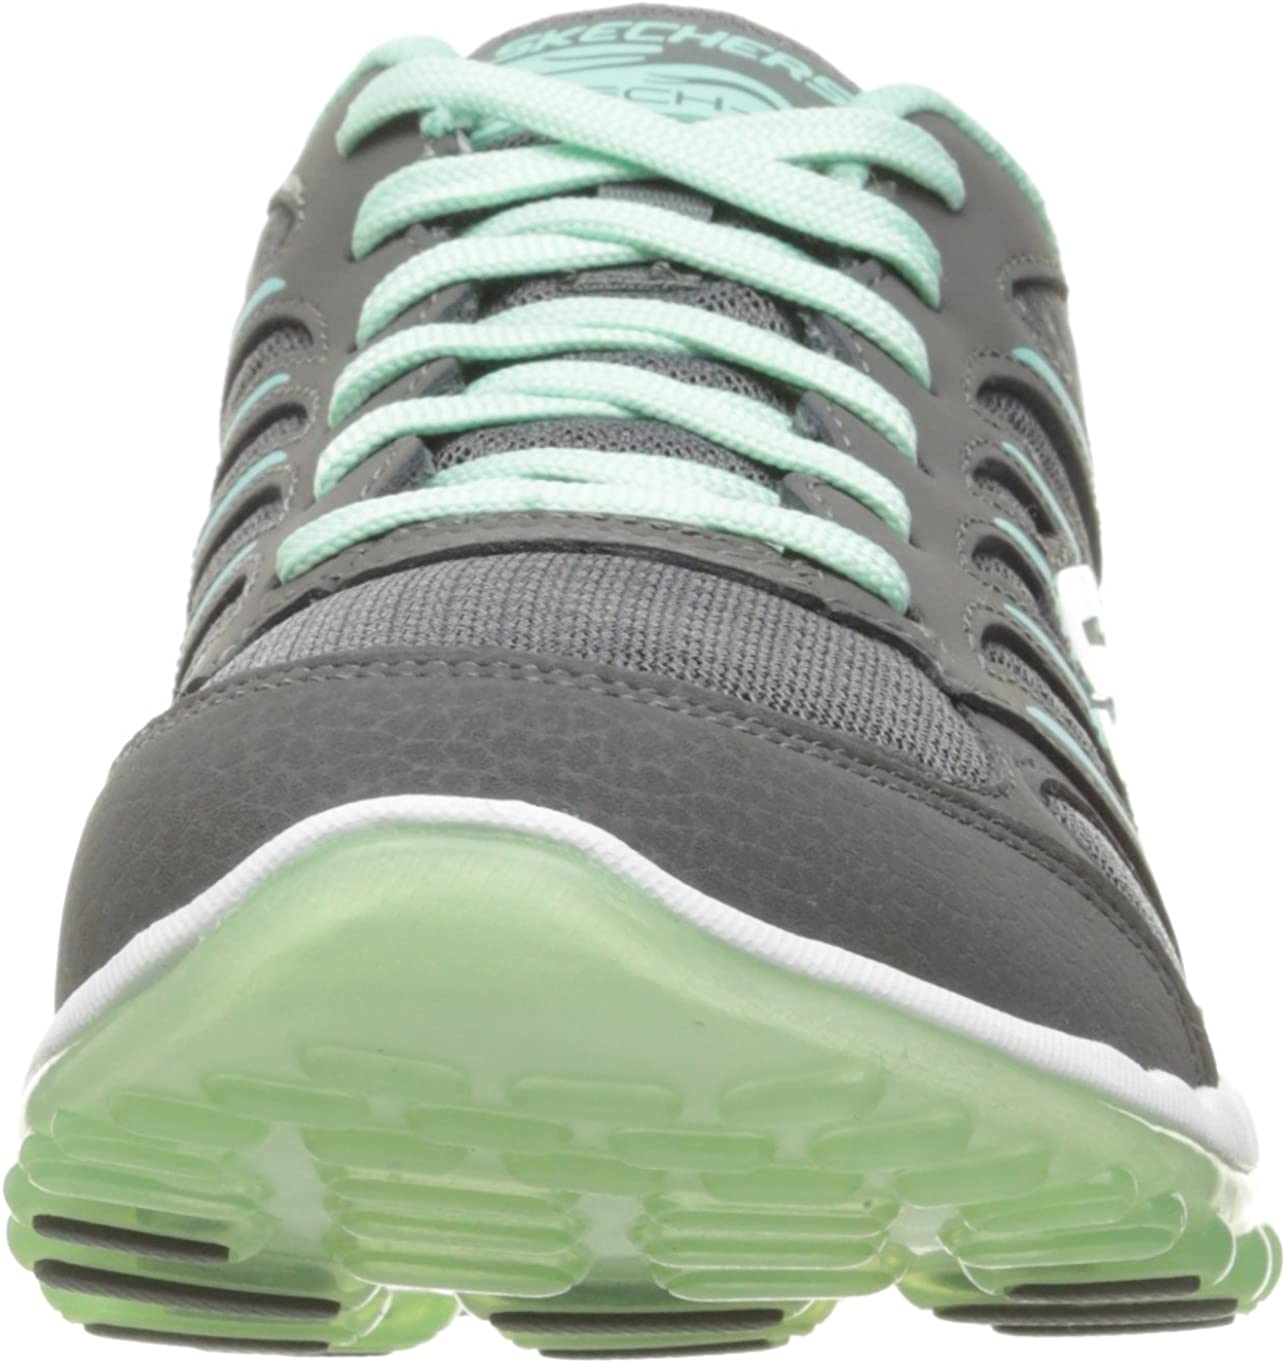 Amazon.com: Skechers Skech Air 2.0 City Love Fashion tenis ...